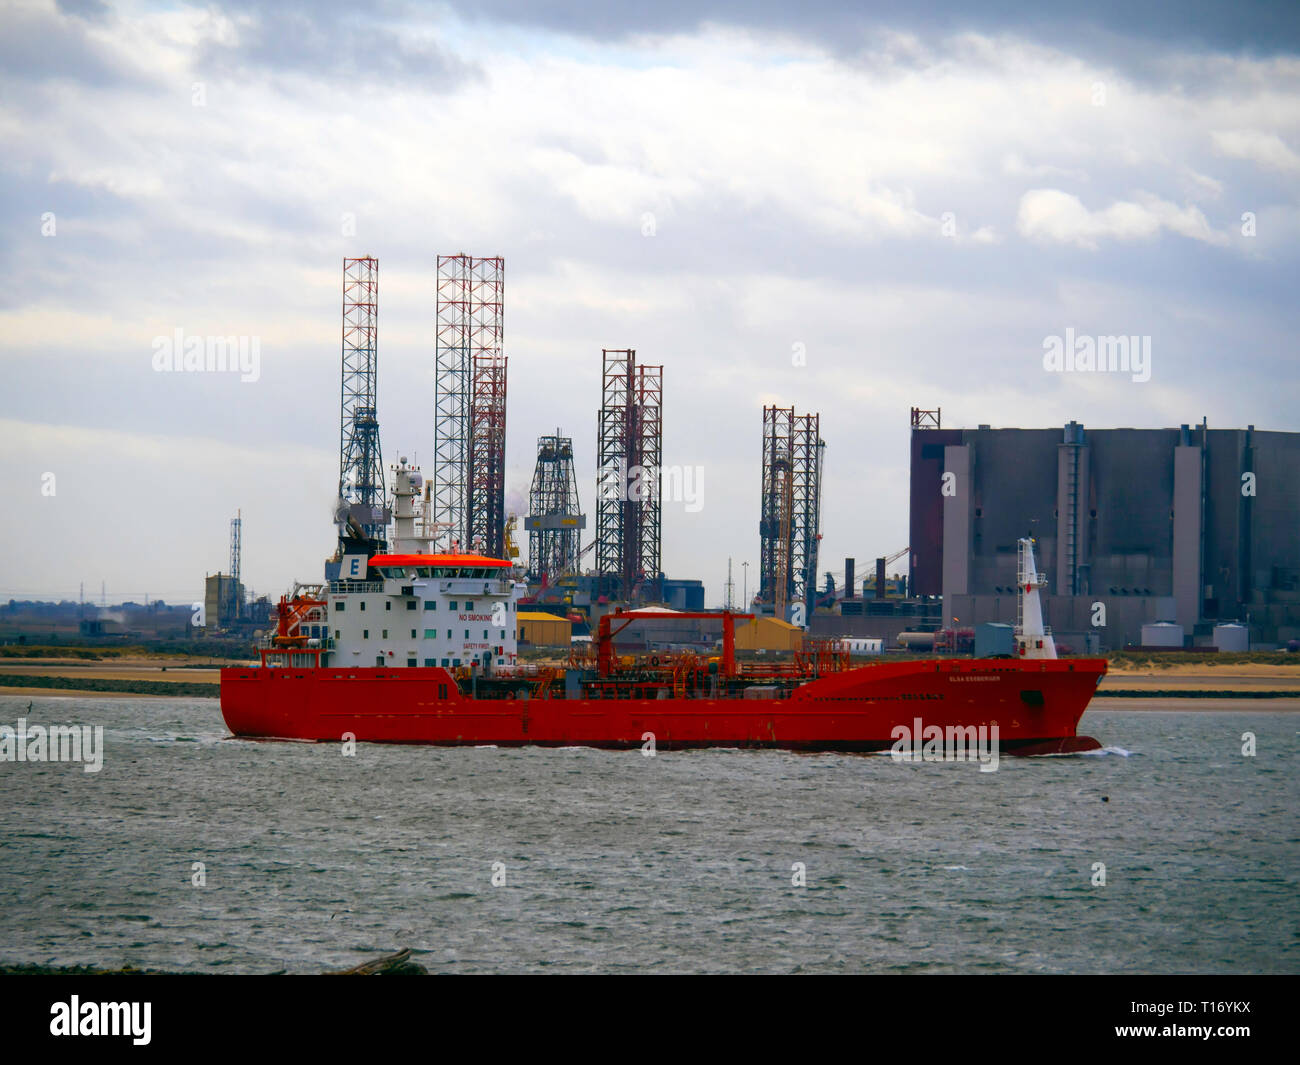 Oil Chemical tanker ELSA ESSBERGER  IMO:9481001, MMSI 255805470 departing from Teesport England UK passing drilling rigs and Hartlepool power station - Stock Image